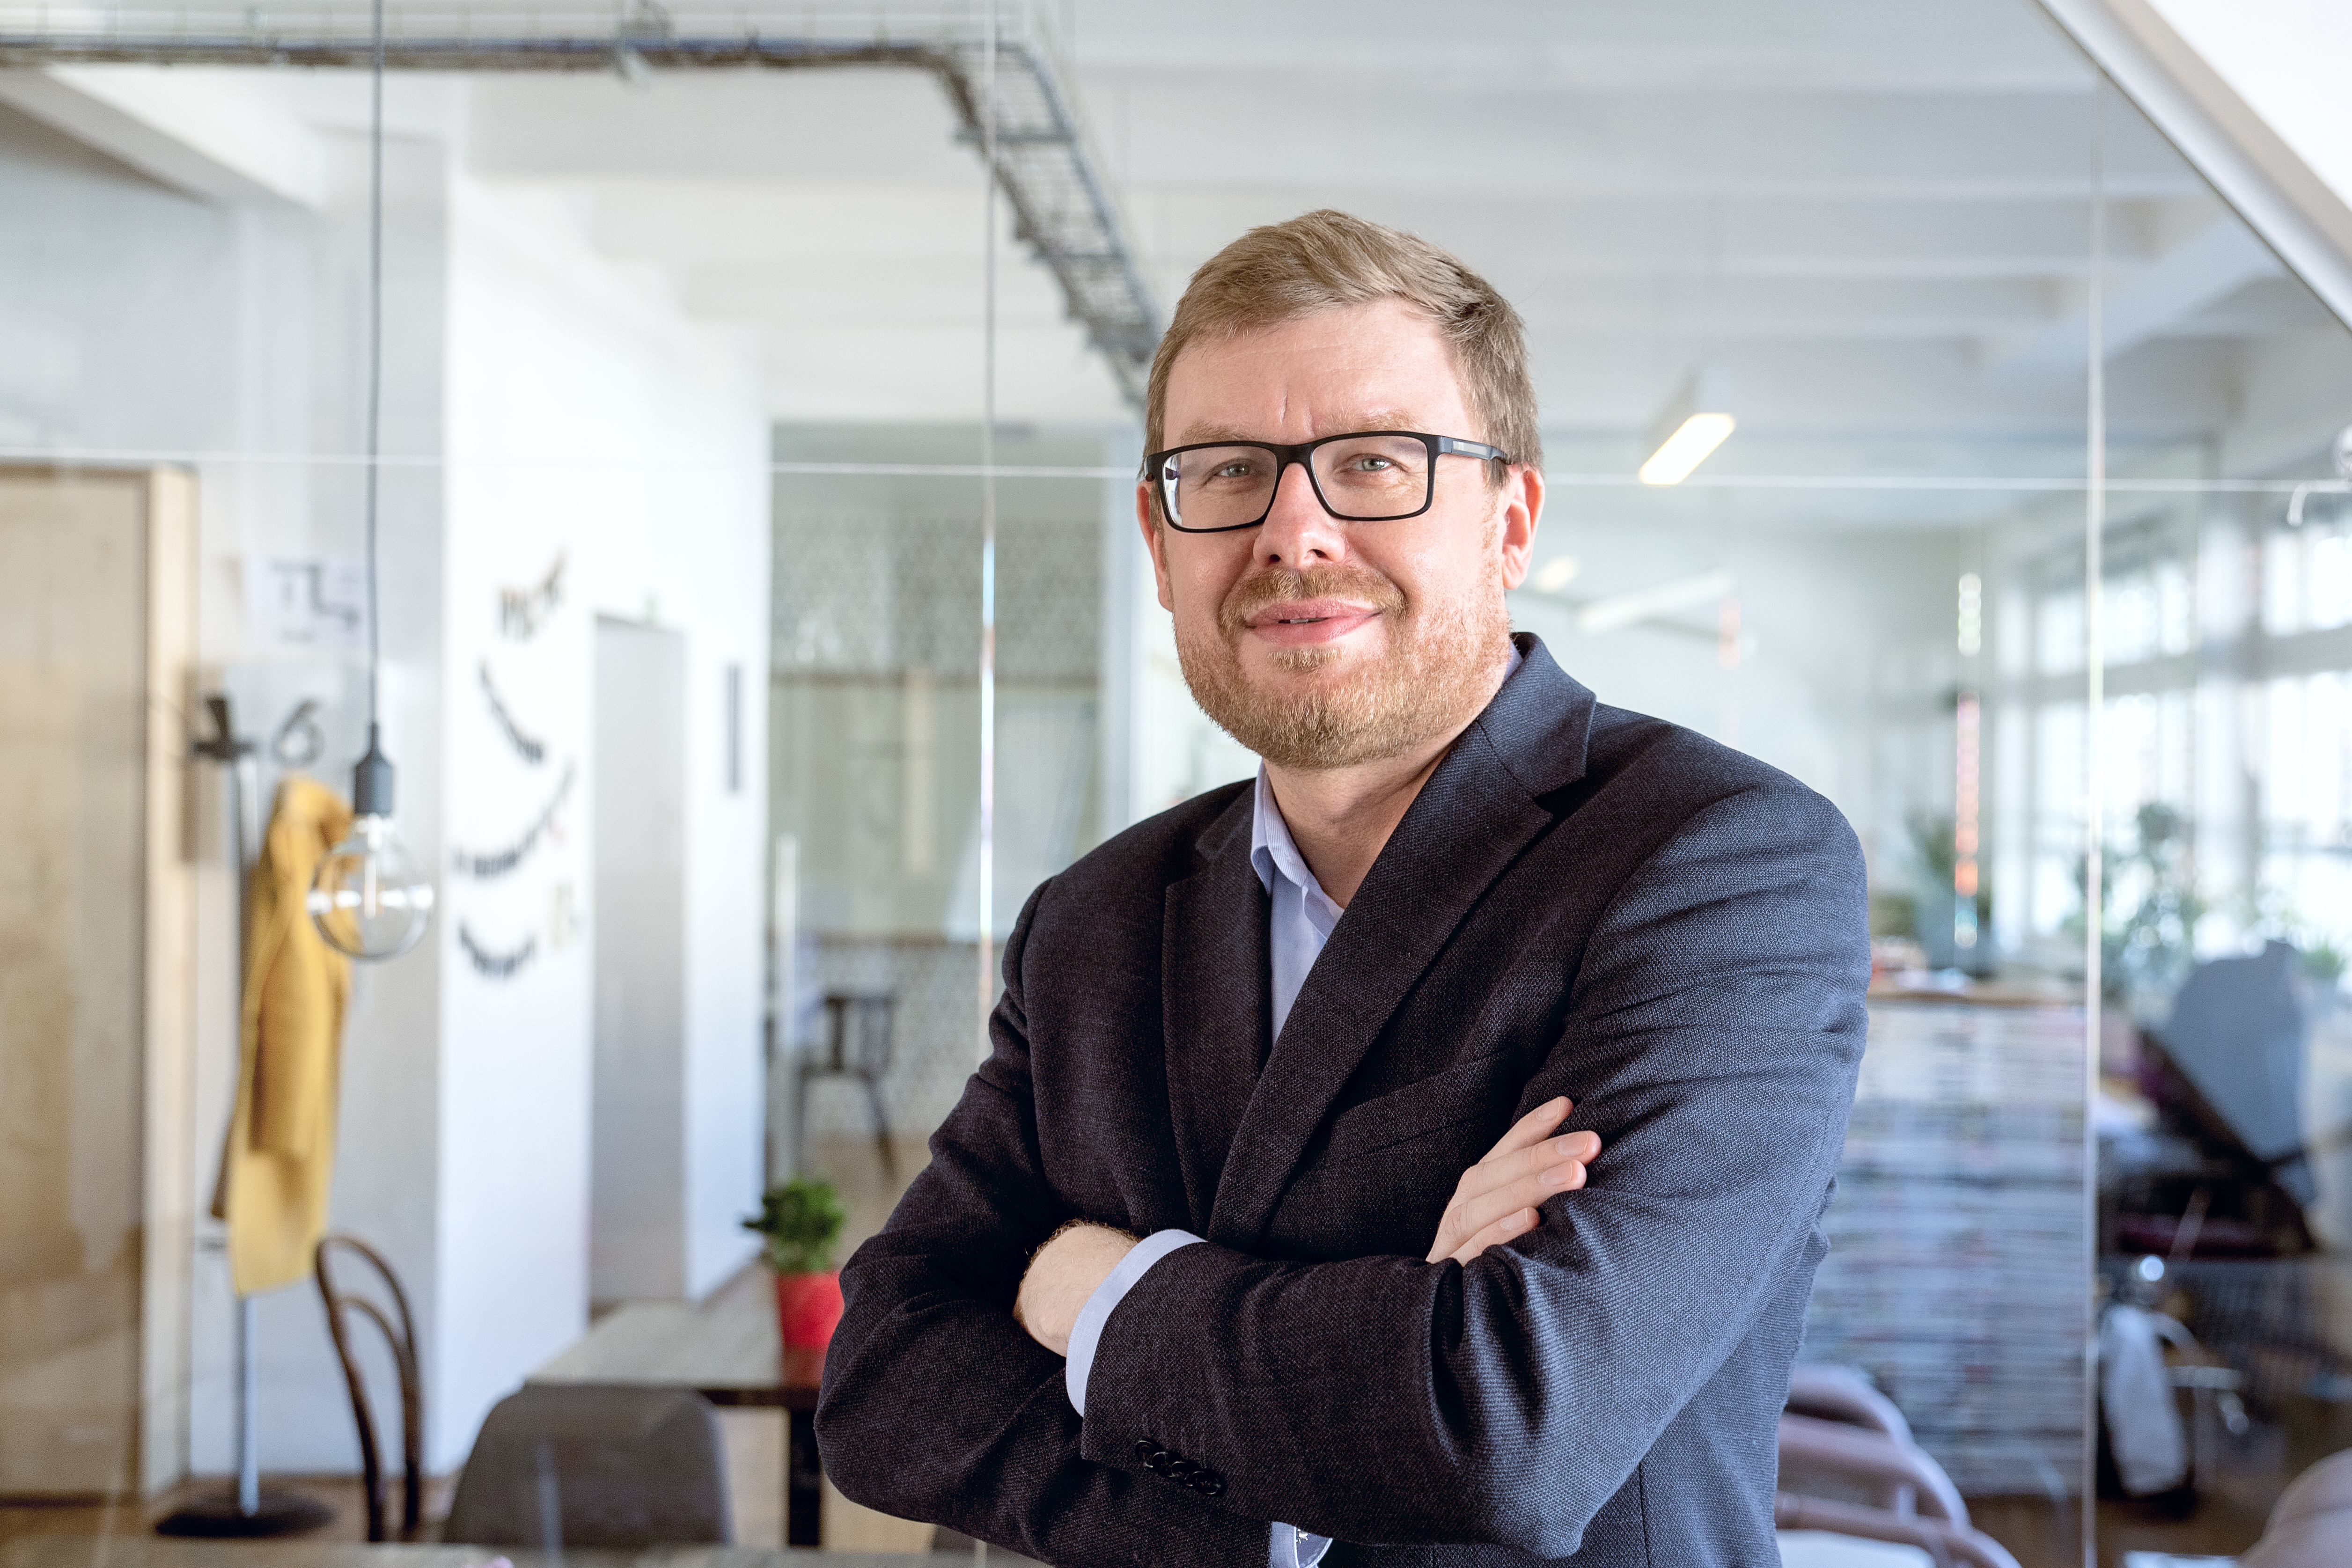 MSL Czech Republic Appoints Radek Vitek as Head of Brand Reputation